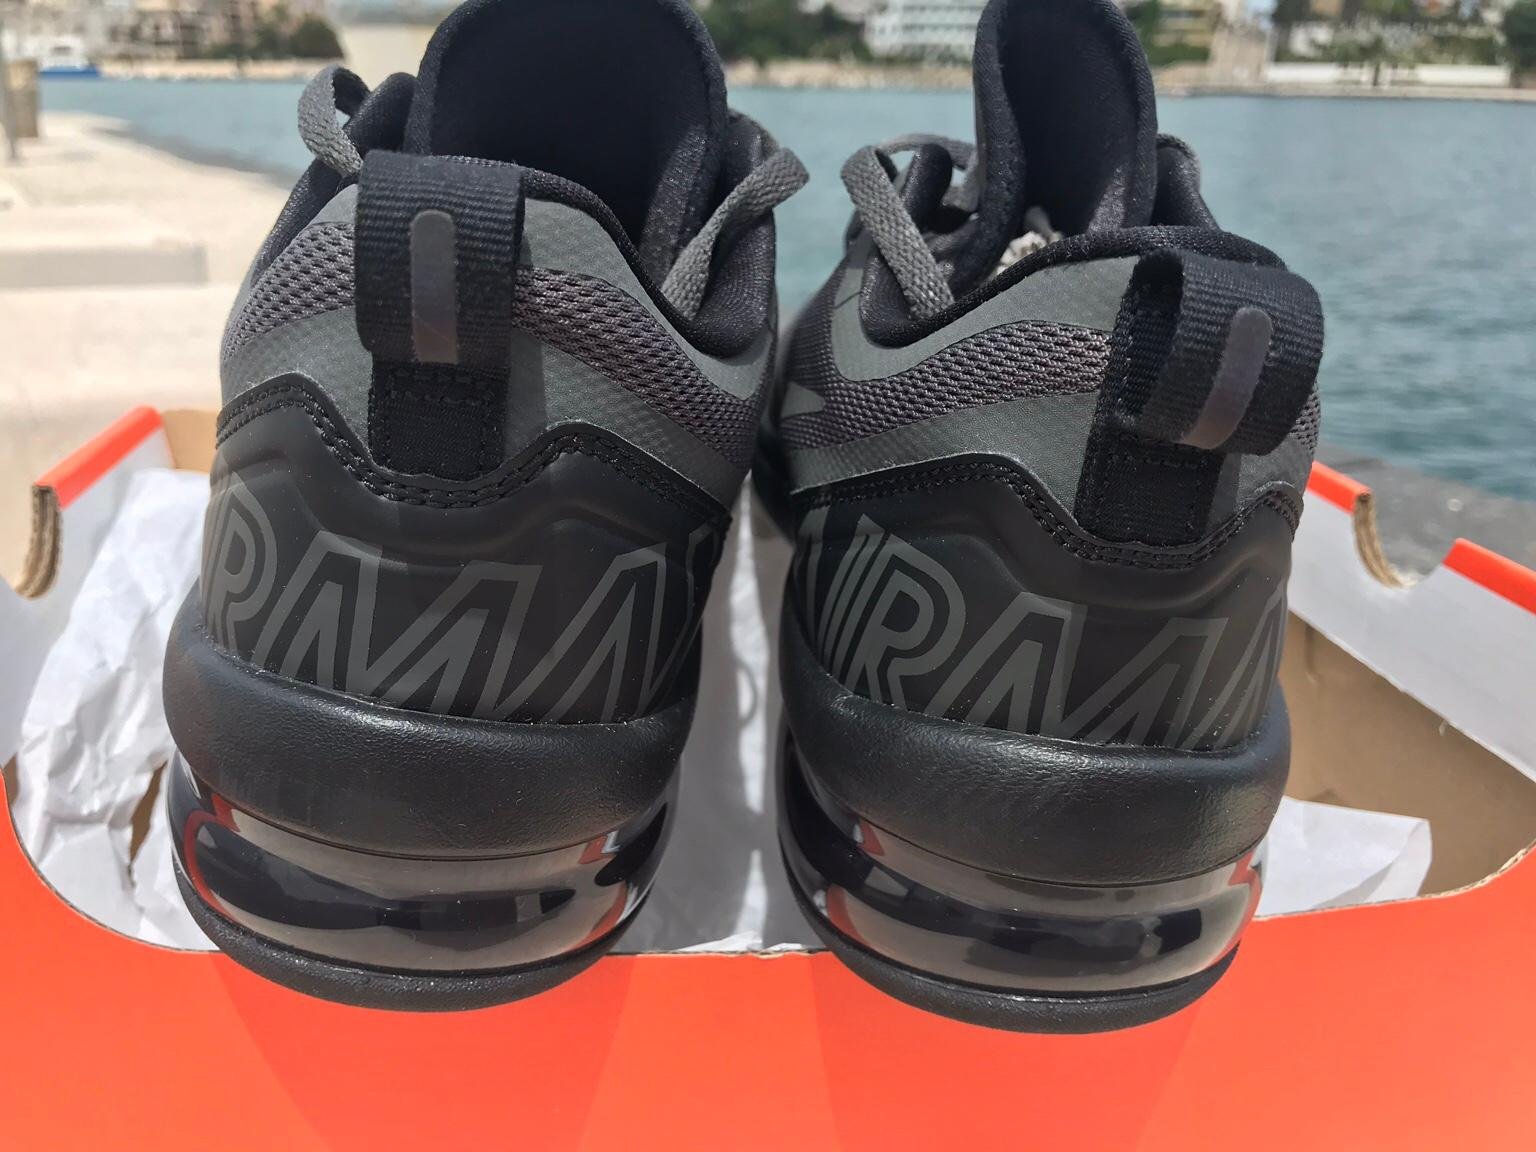 Scarpe Nike Air Max Penny tg. 43 Nuove in 72100 Brindisi for